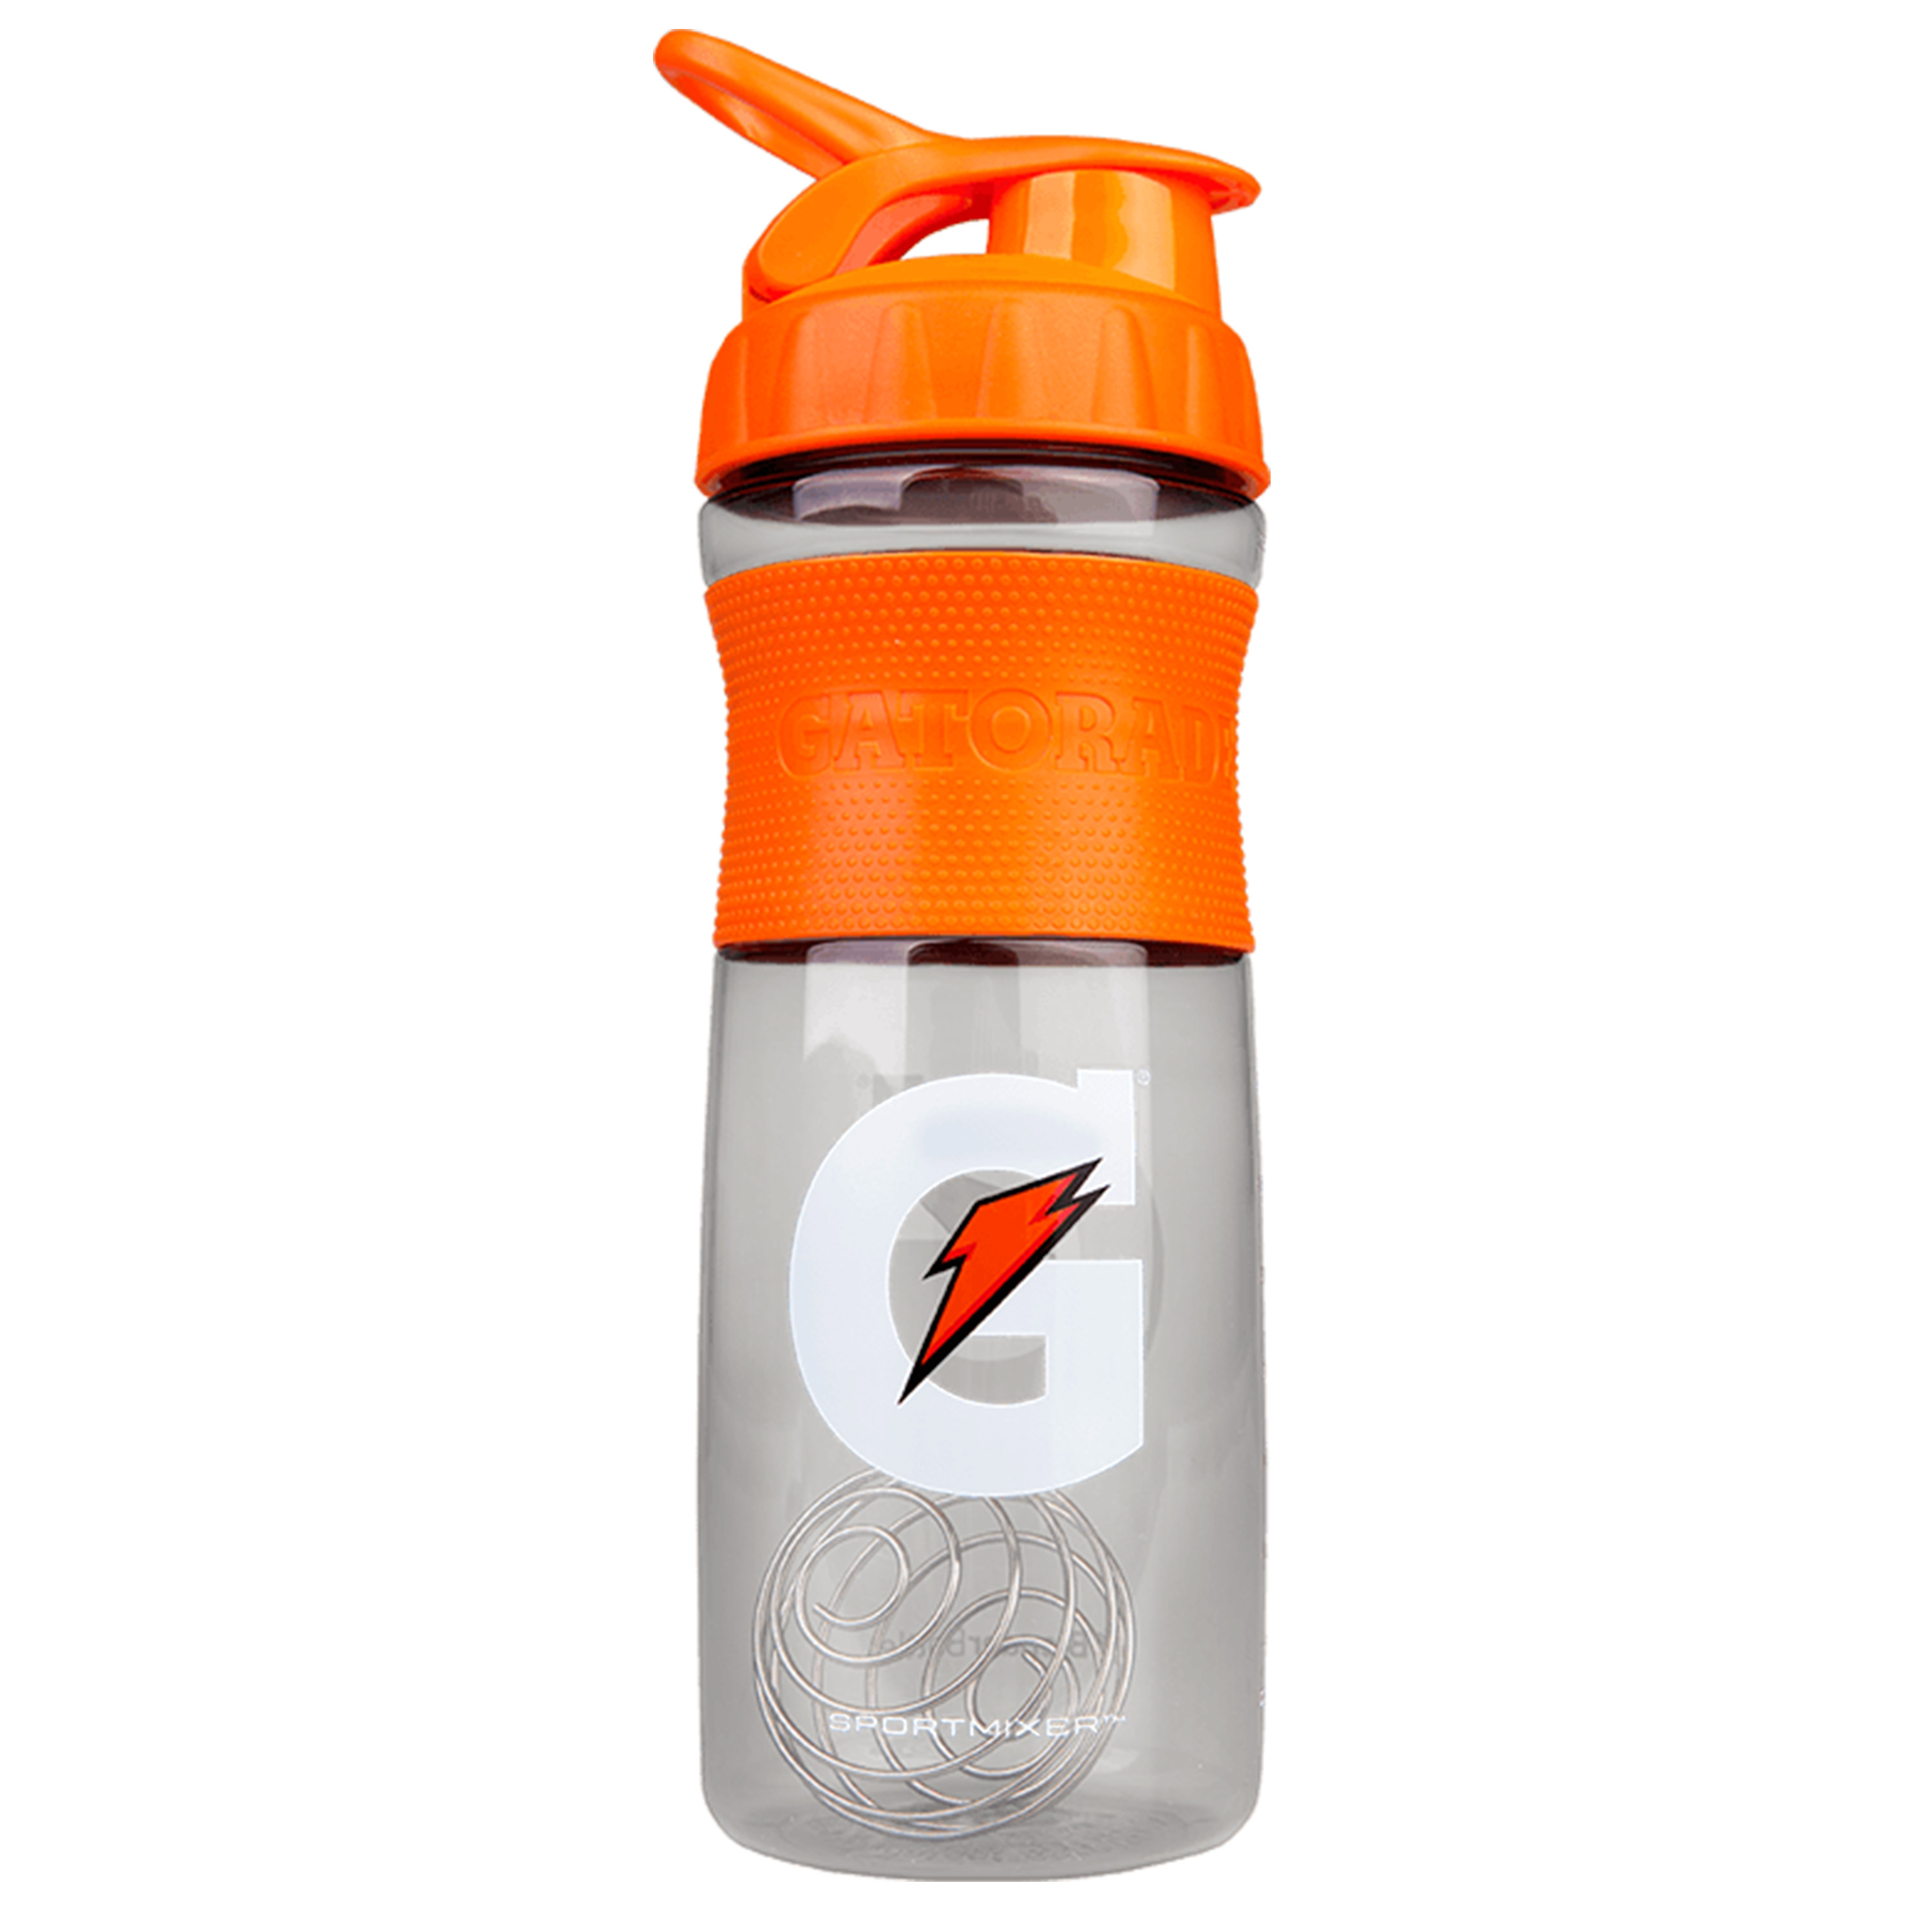 21 oz 3dRose wb/_151532/_1 Best Neighbor Ever-Gifts for Good Neighbors-Fun Humorous Funny Neighborhood Humor Sports Water Bottle White